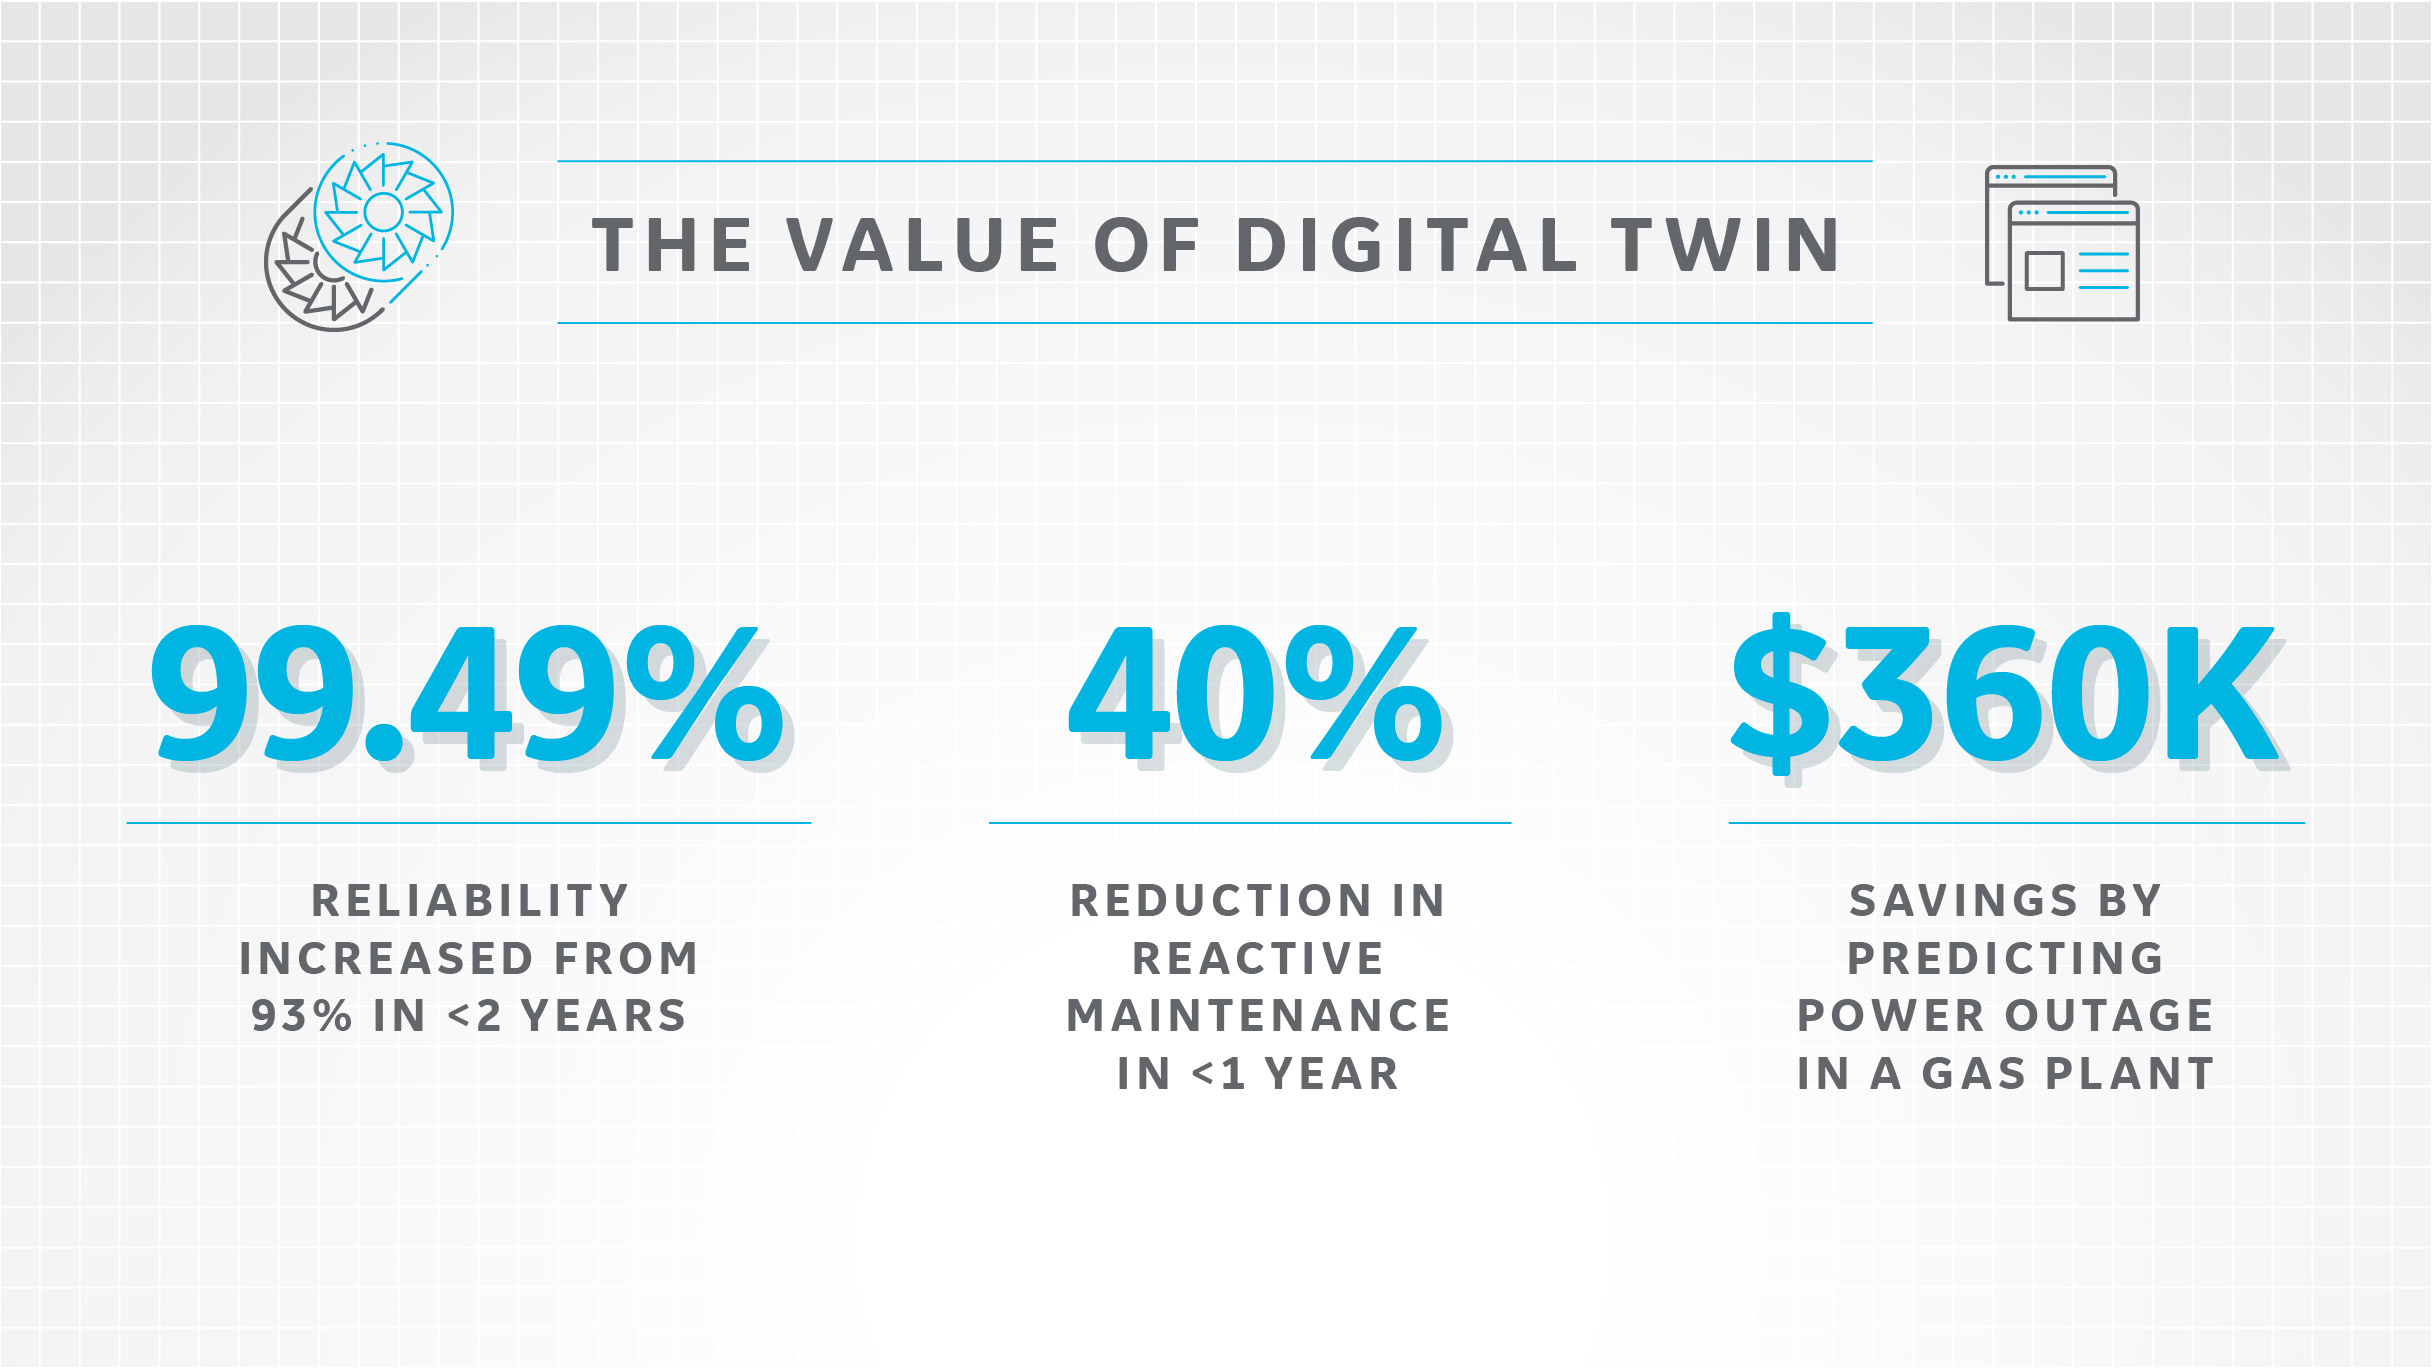 The value of digital twin